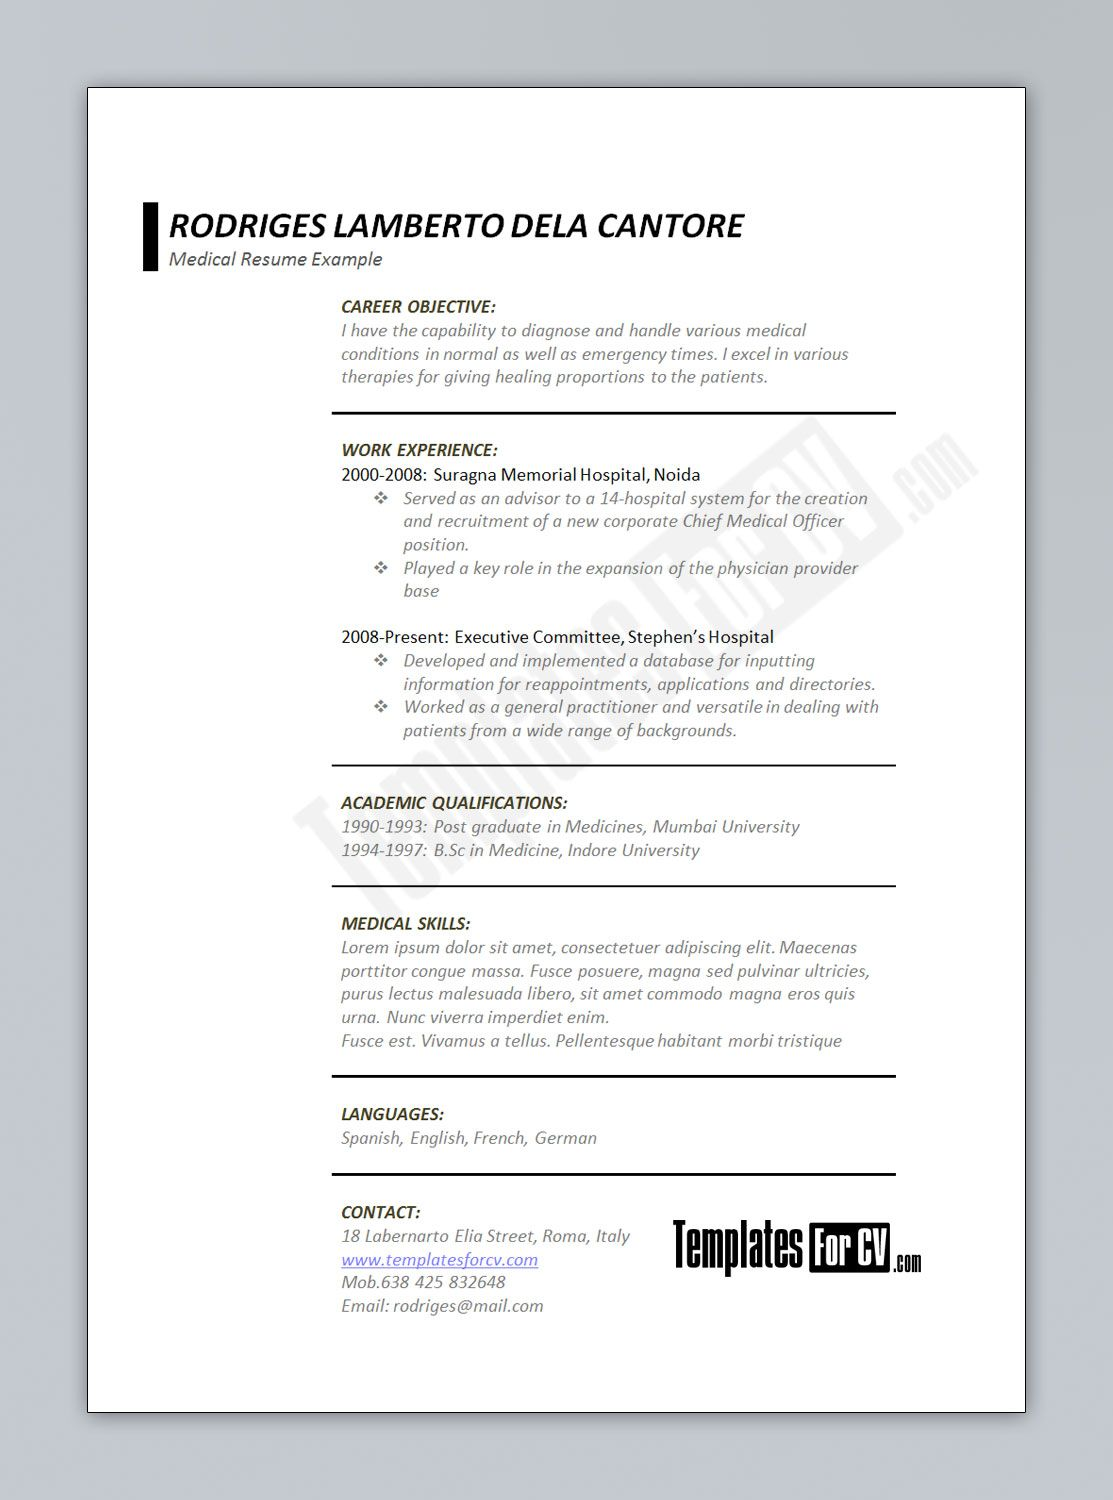 Curriculum Vitae Template Professional CV Writing Services